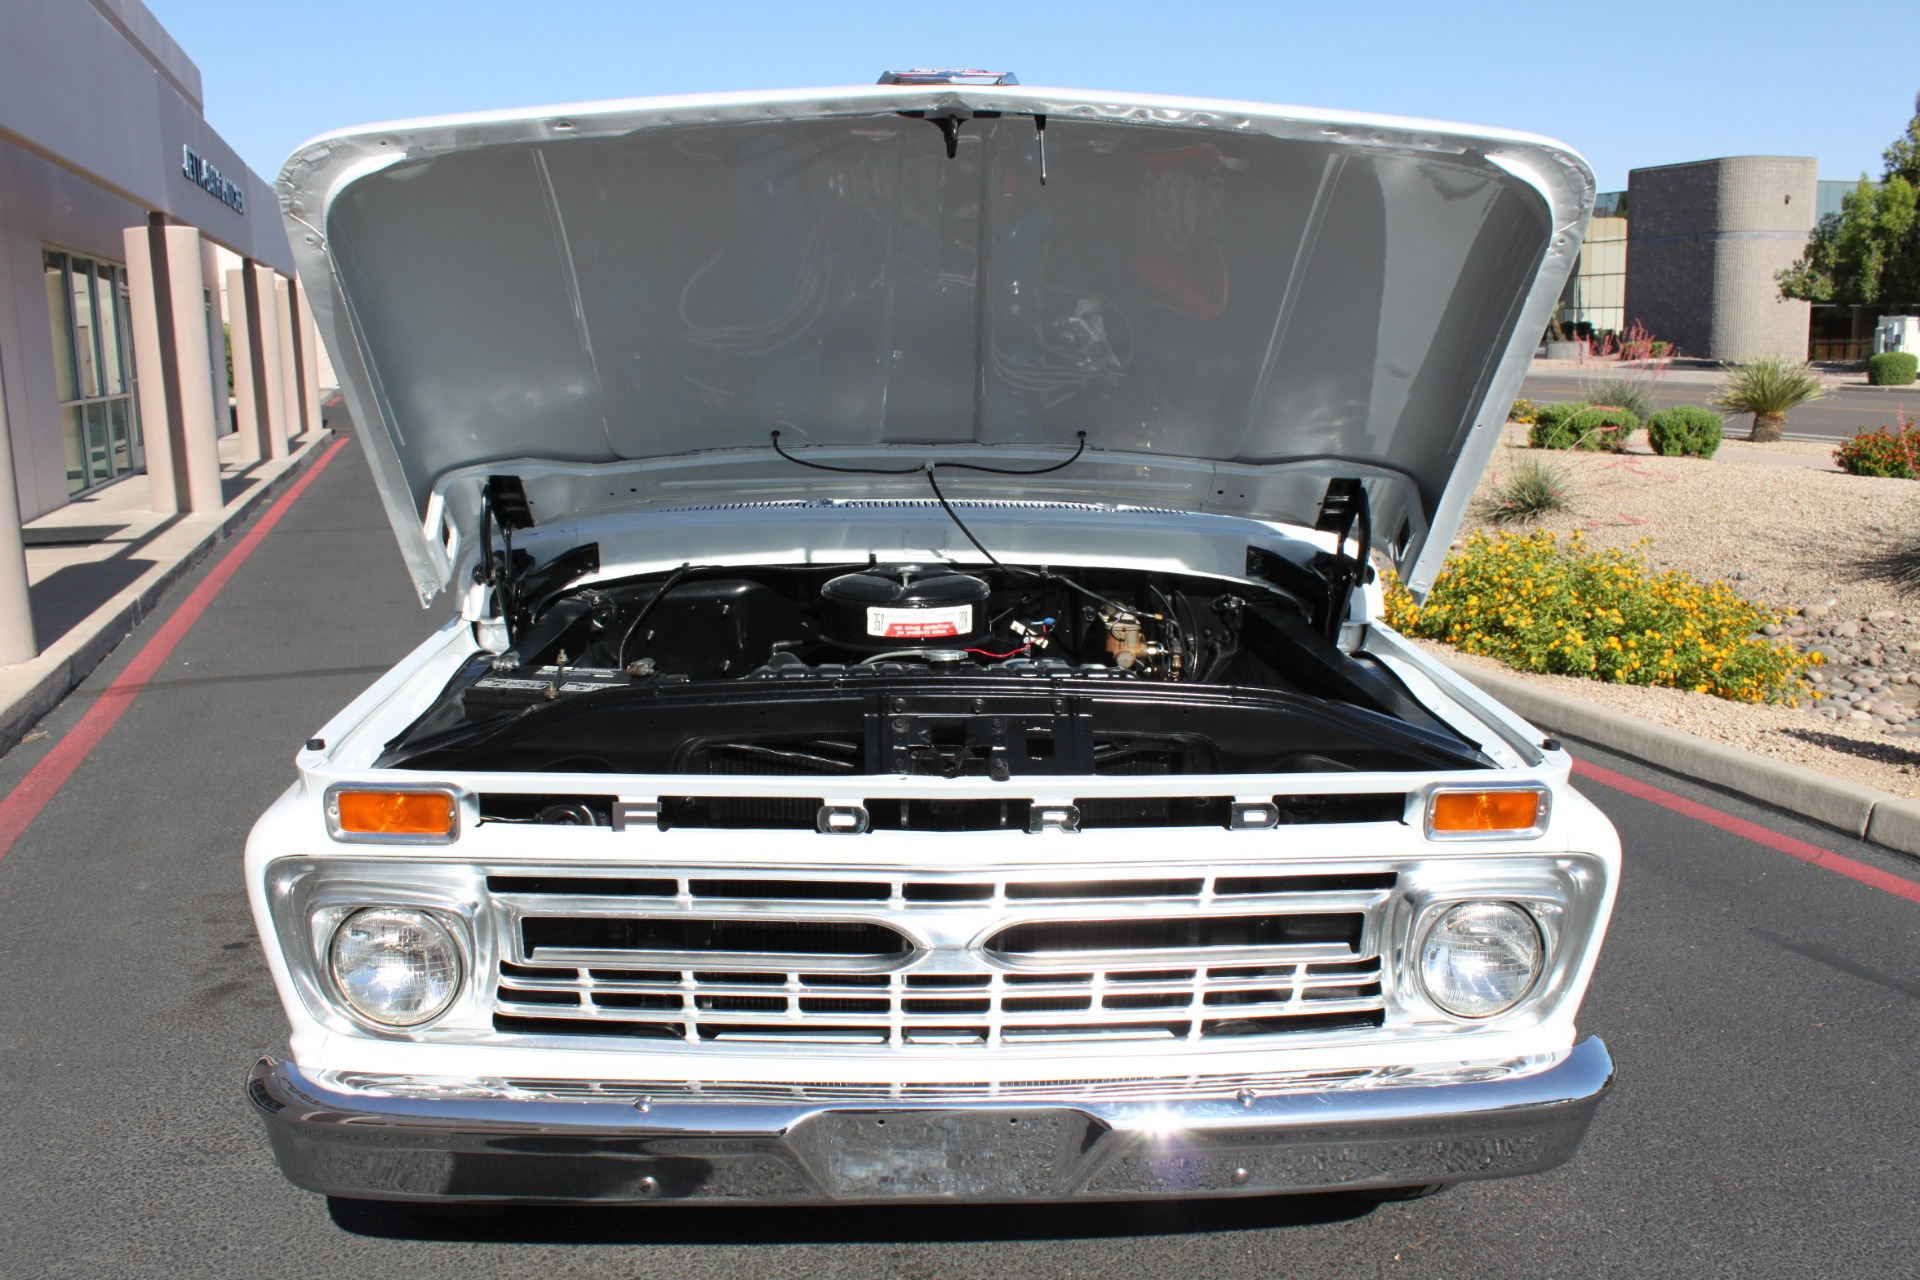 Used-1966-Ford-F-100-Custom-Cab-Range-Rover